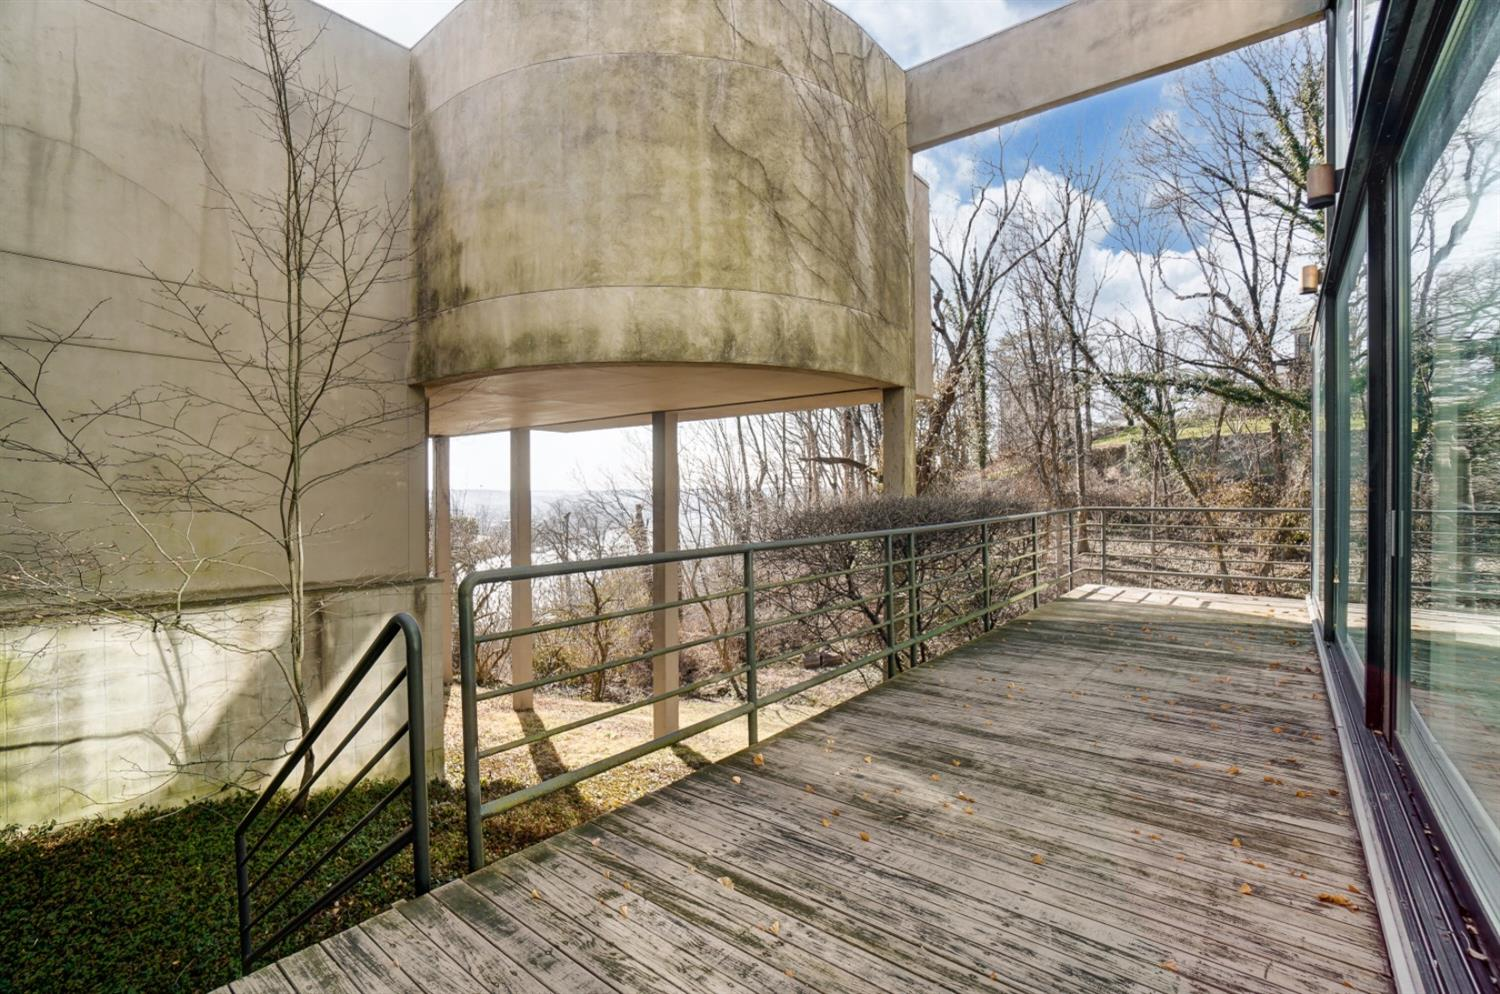 Another deck accessible from the pool atrium provides dramatic architectural and natural views. Stairs leading to large wooded yard.